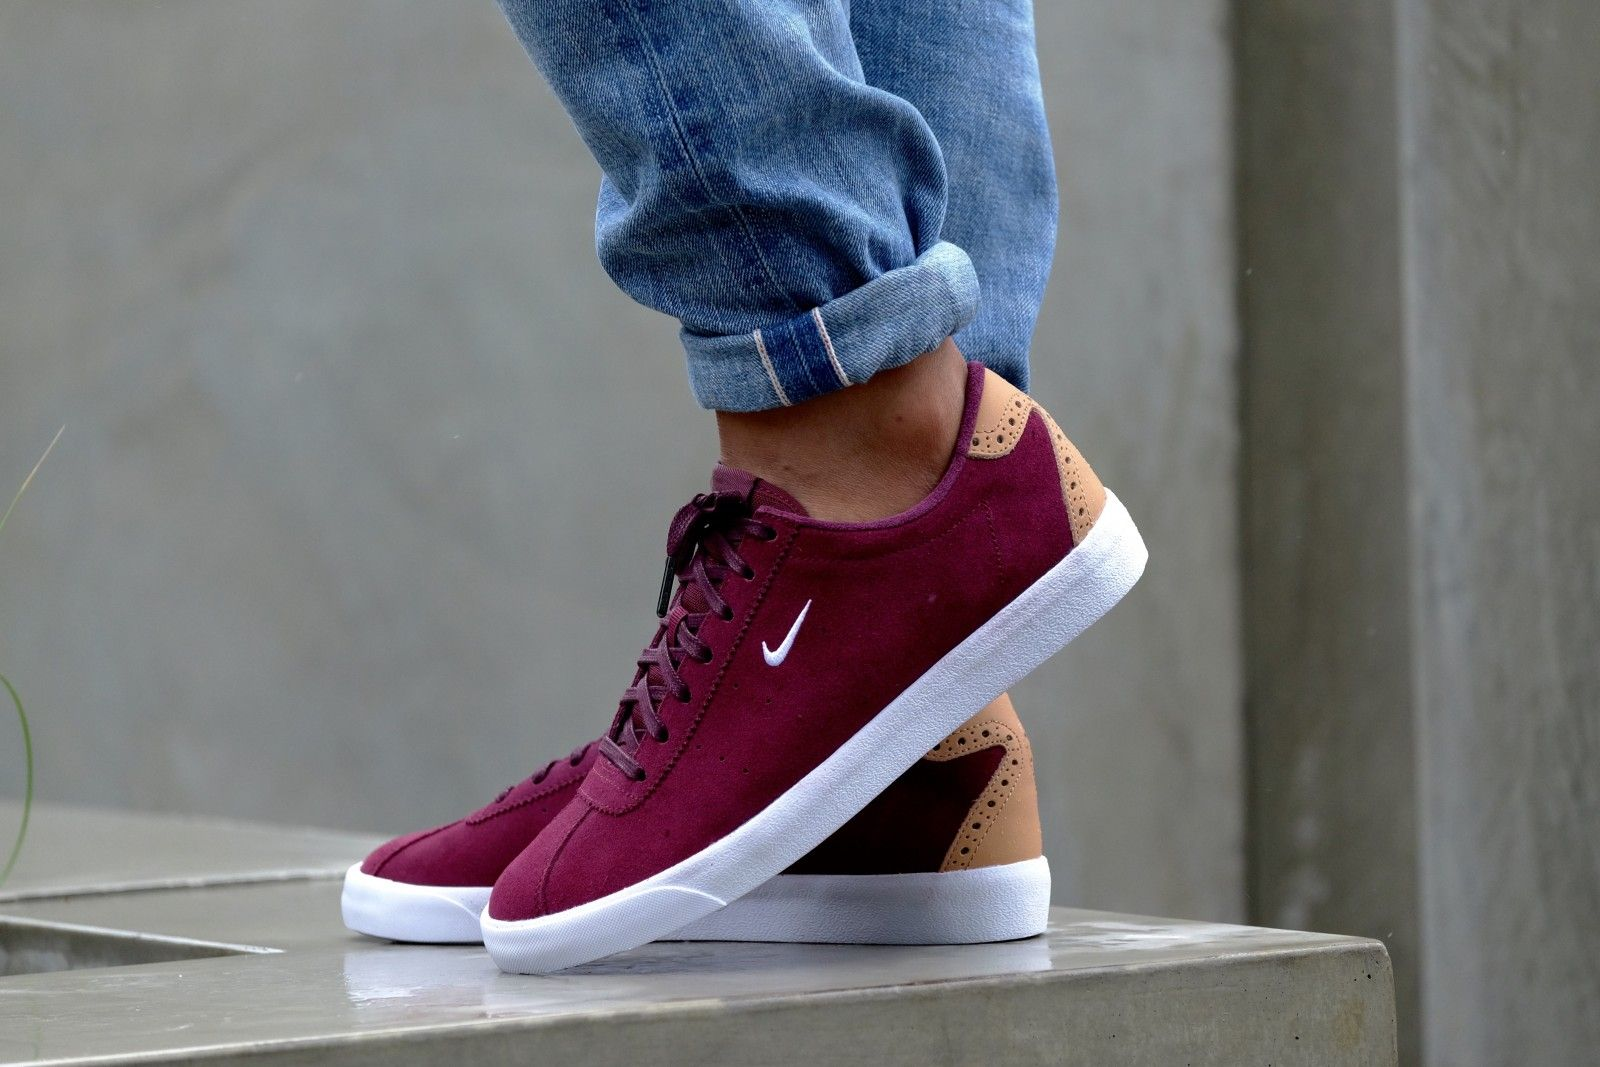 buy online 13032 49a64 Nike Match Classic Suede Night Maroon  White-Vachetta Tan - 844611-601